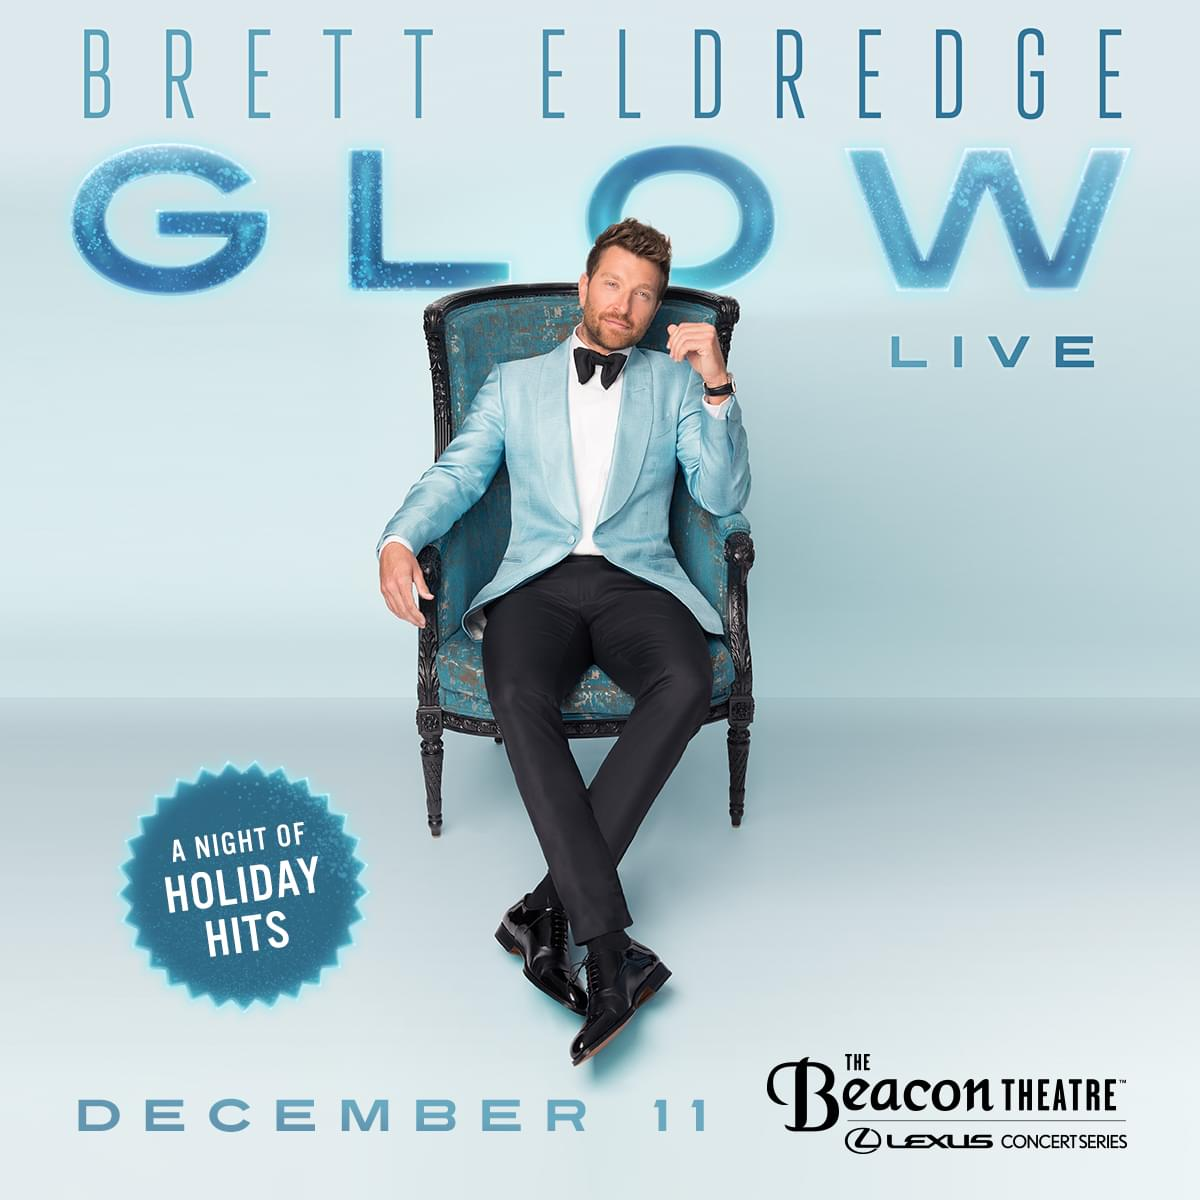 Win Tickets to Brett Eldredge's Glow Live: A Night of Holiday Hits!